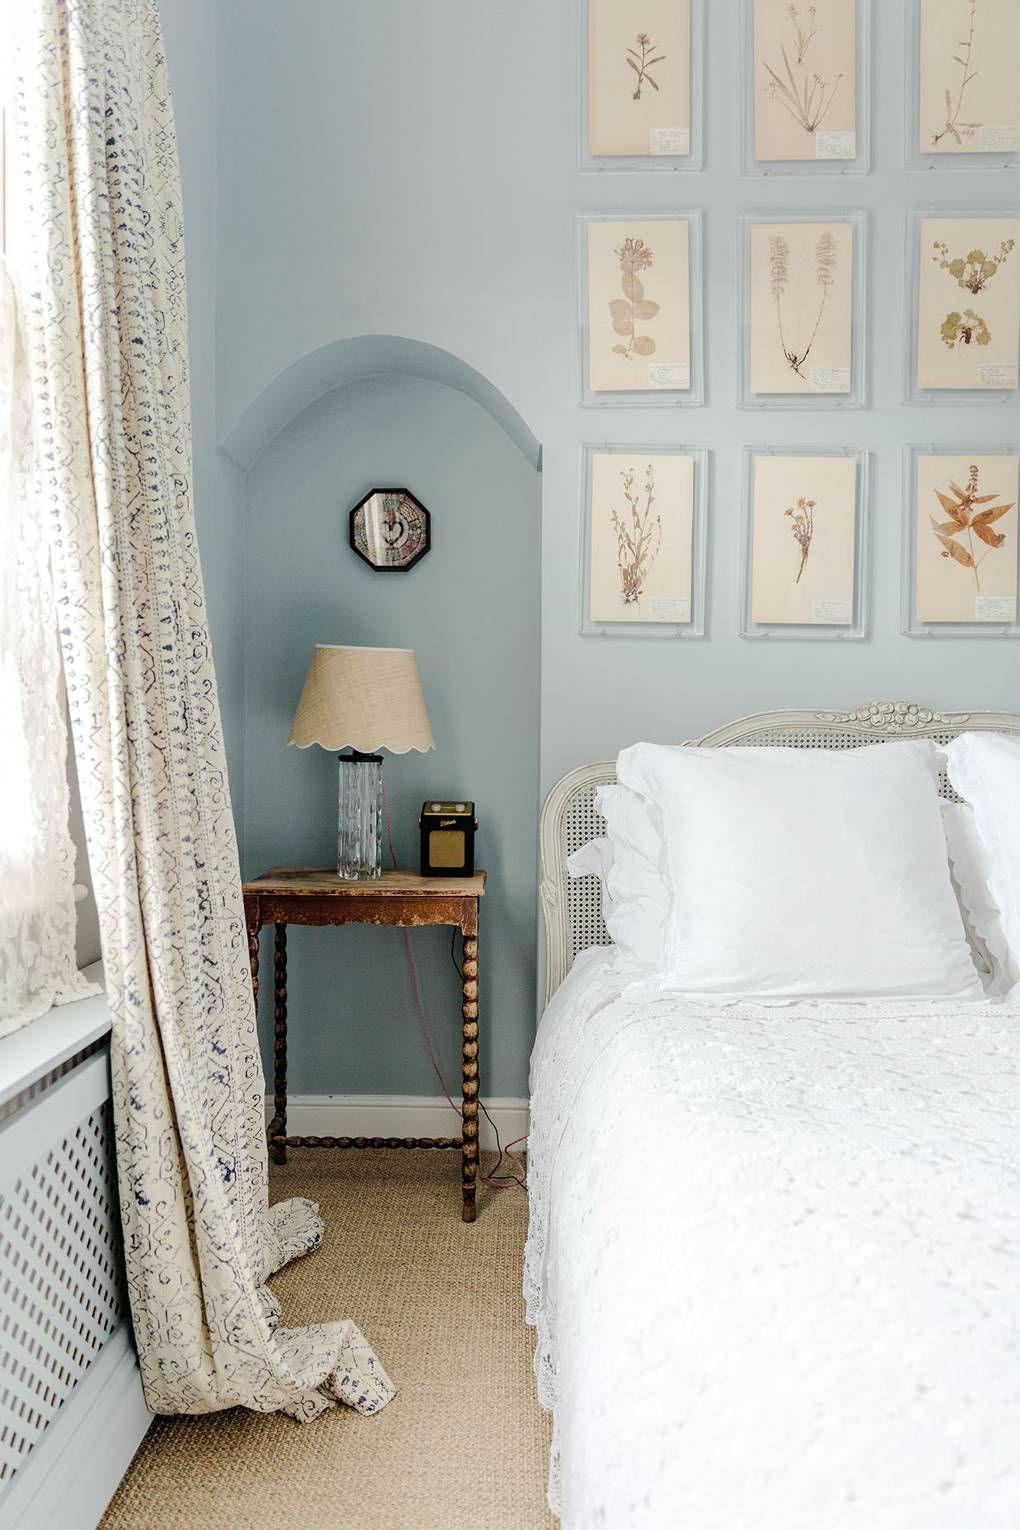 Matilda Goad's Charming Notting Hill Home images